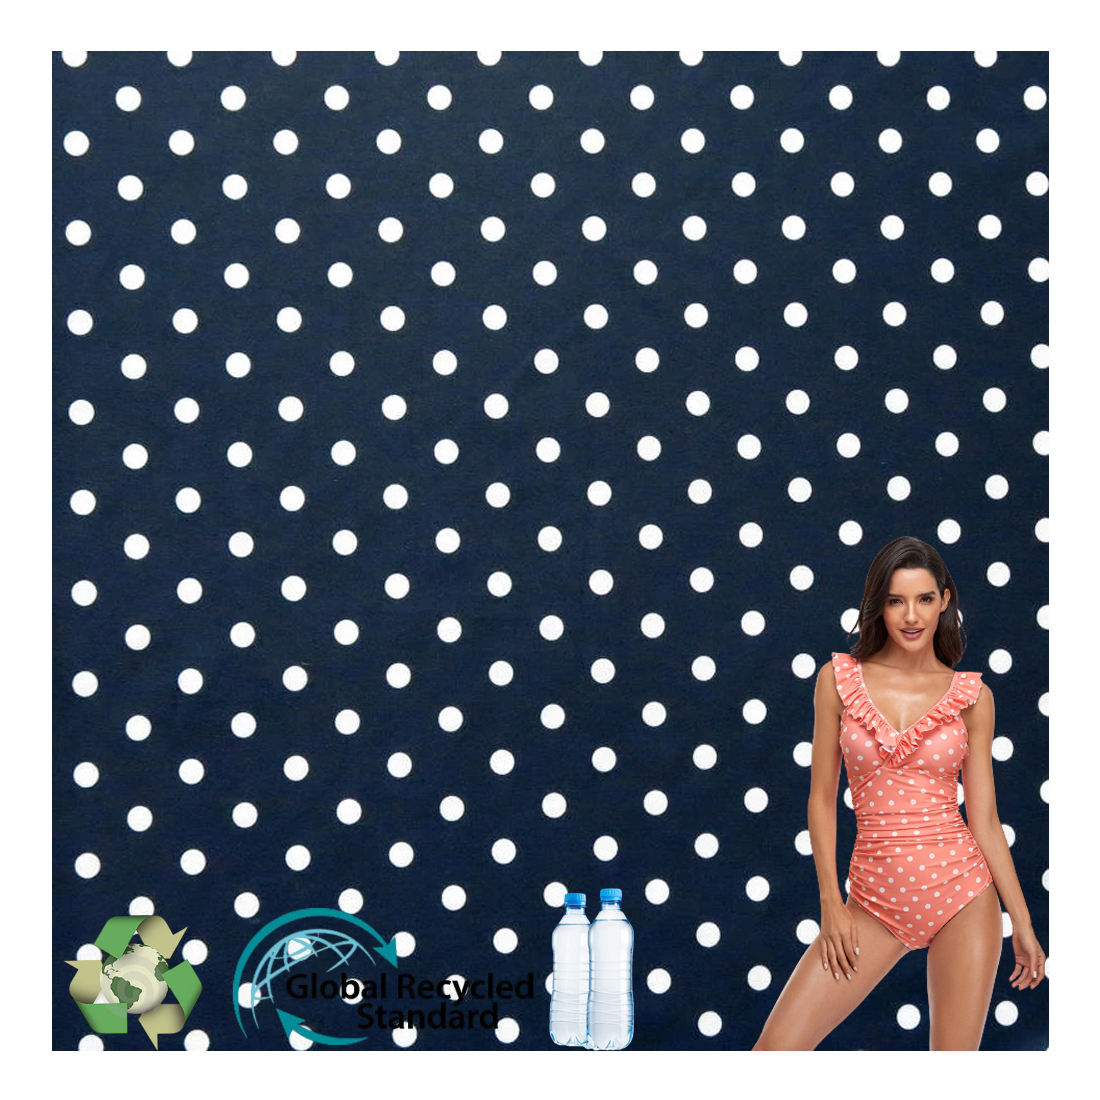 High Quality 4 Way Stretch 84% Nylon 16% Spandex Recycle Swimwear Fabric For Swimsuit